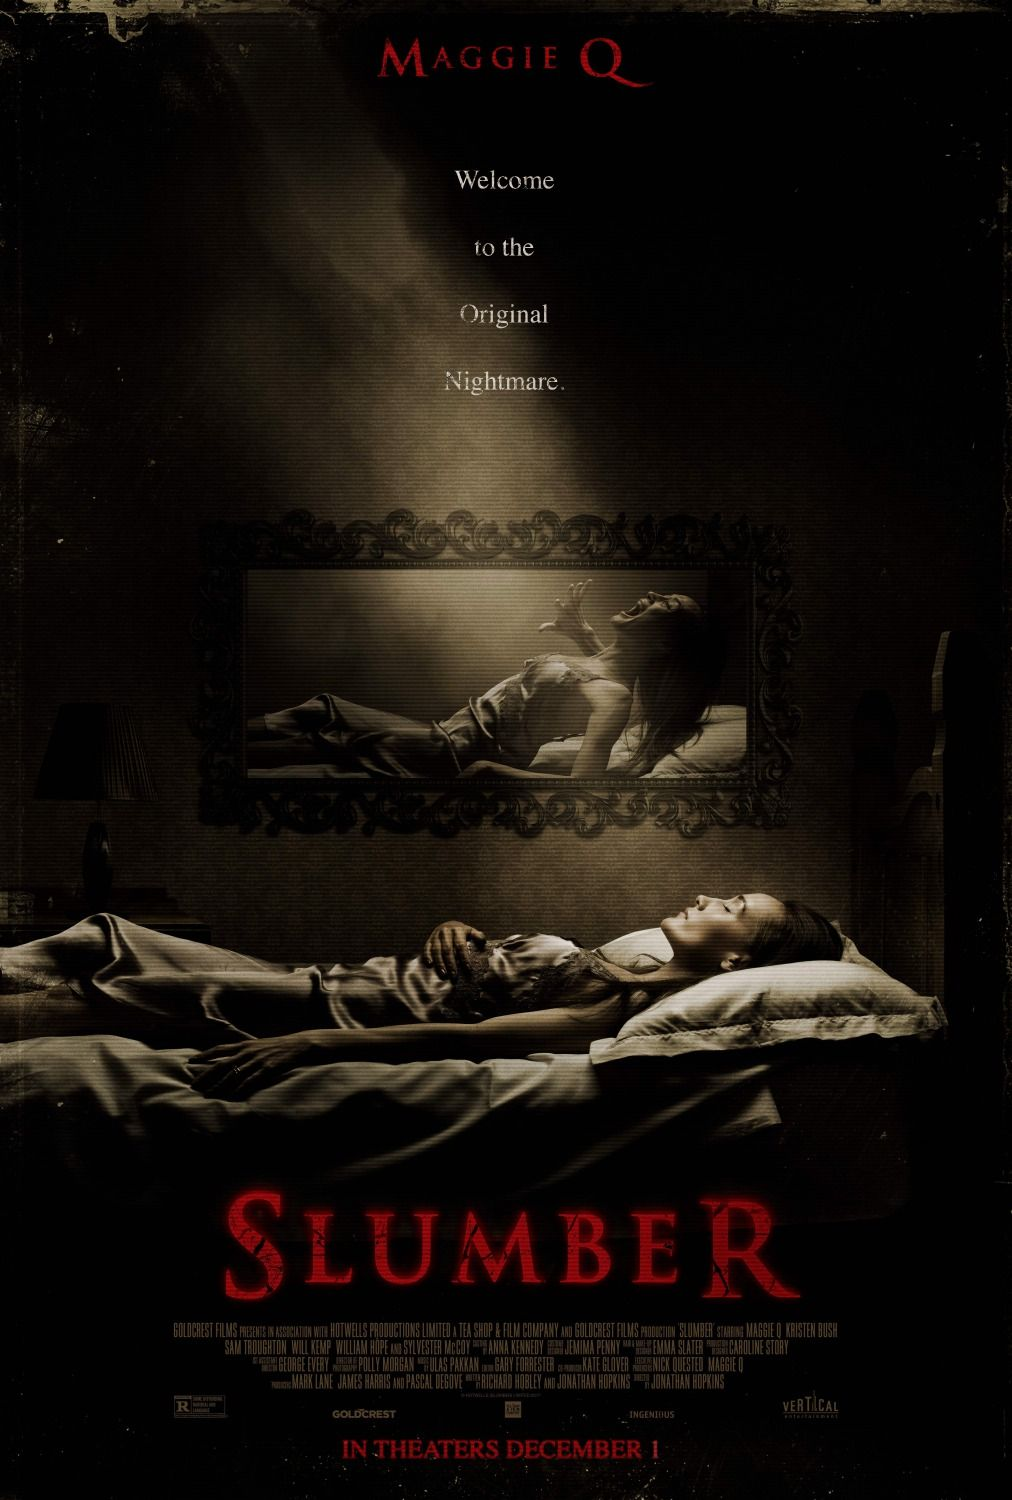 Return to the main poster page for Slumber (1 of 2) New